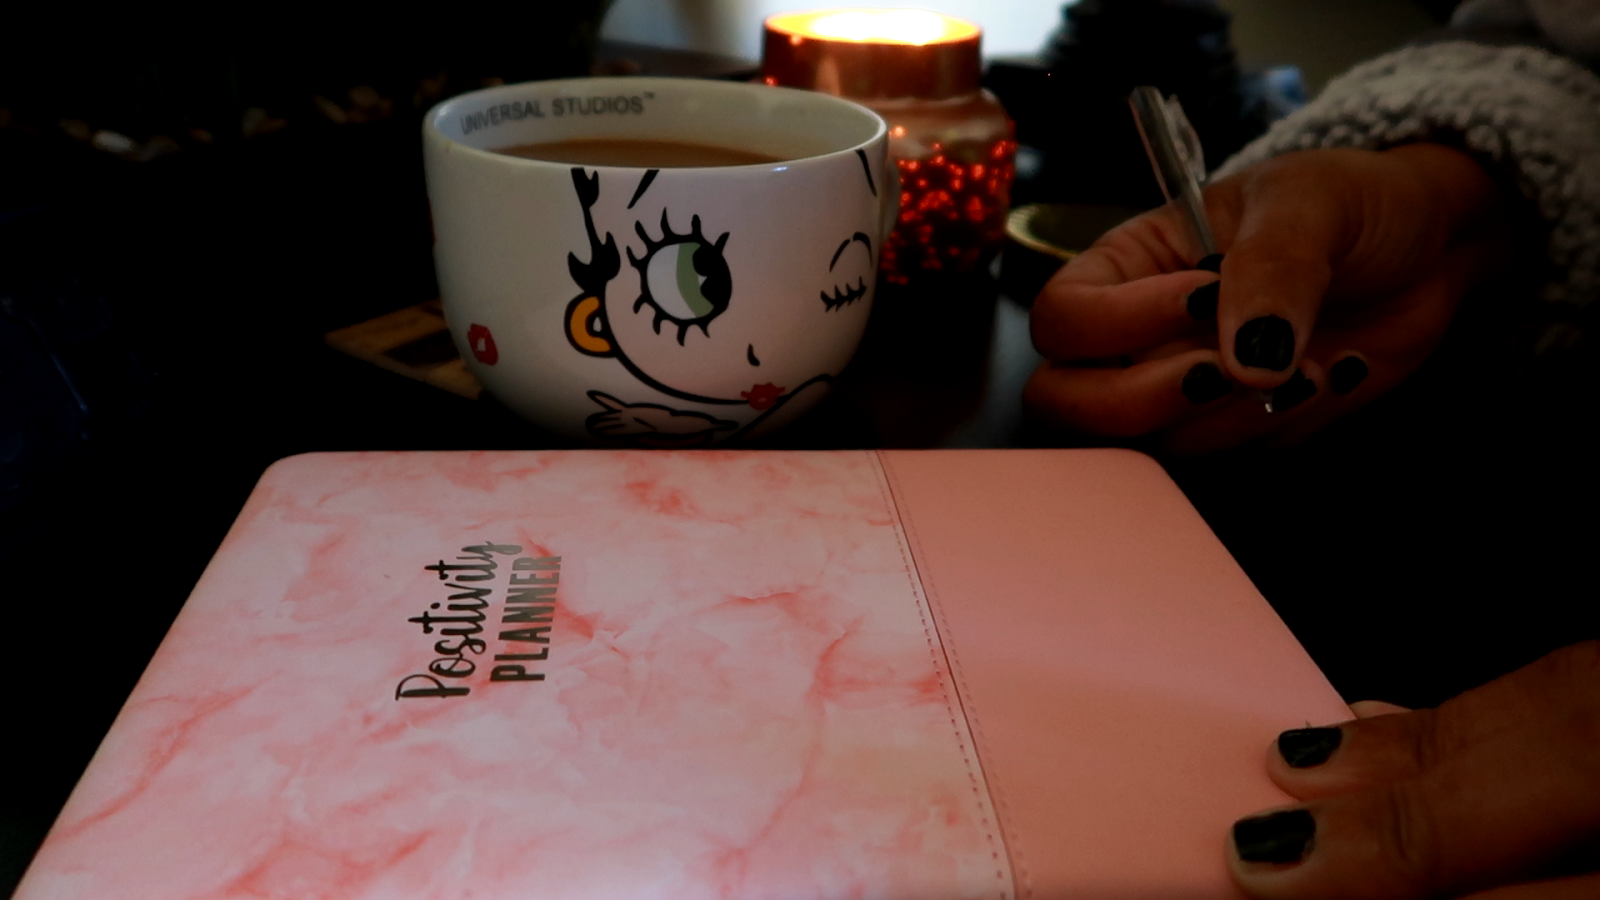 Image: Planner and coffee with lit candle in background. Seen first on Bits and Babbles blog